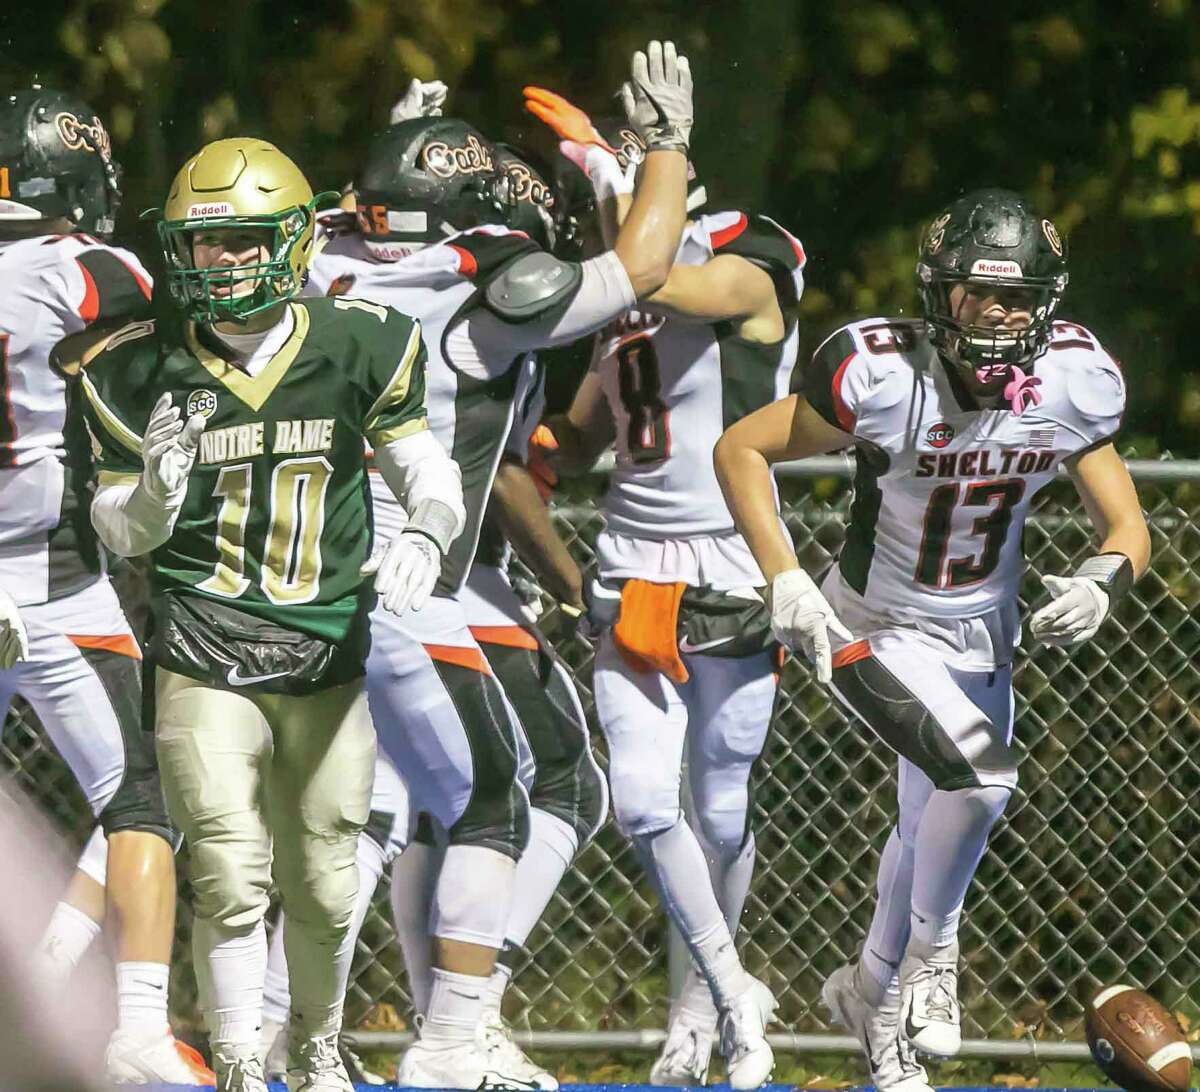 Shelton's David Yakowicz (8) and his teammates celebrate their opening kickoff touchdown against Notre Dame-West Haven.